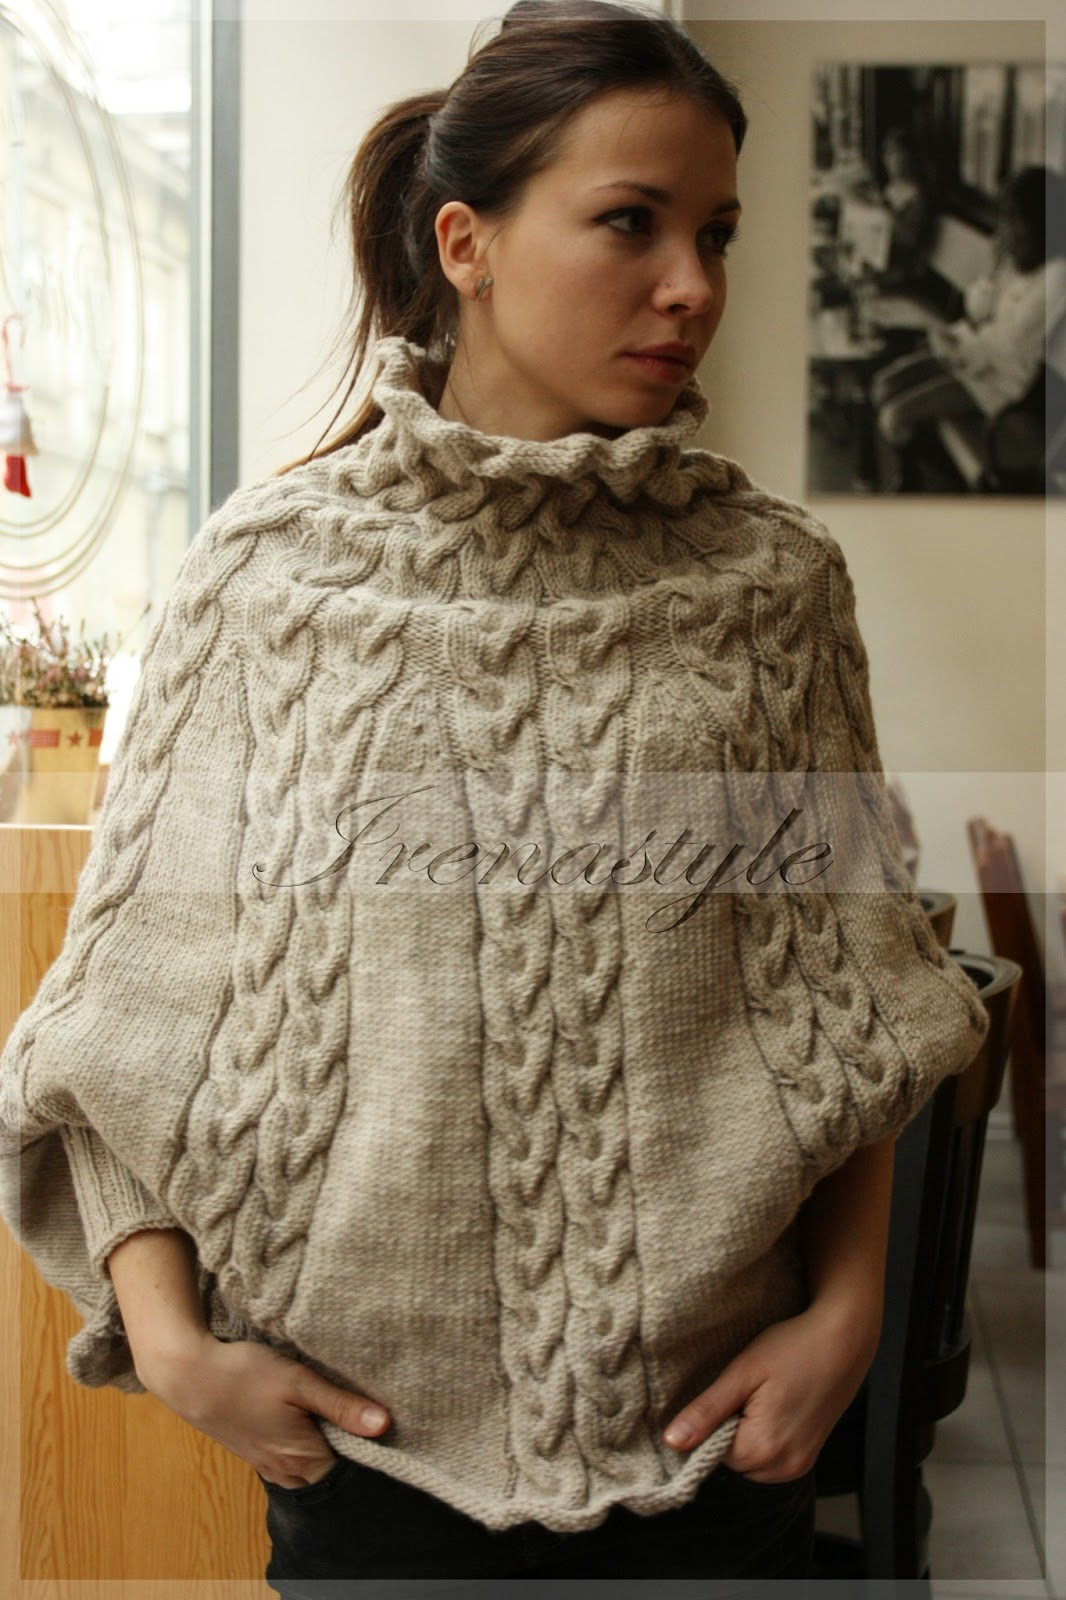 Knitting Pattern For Cape With Sleeves : Crochet Story & Irenastyle: Le petit dejeuner